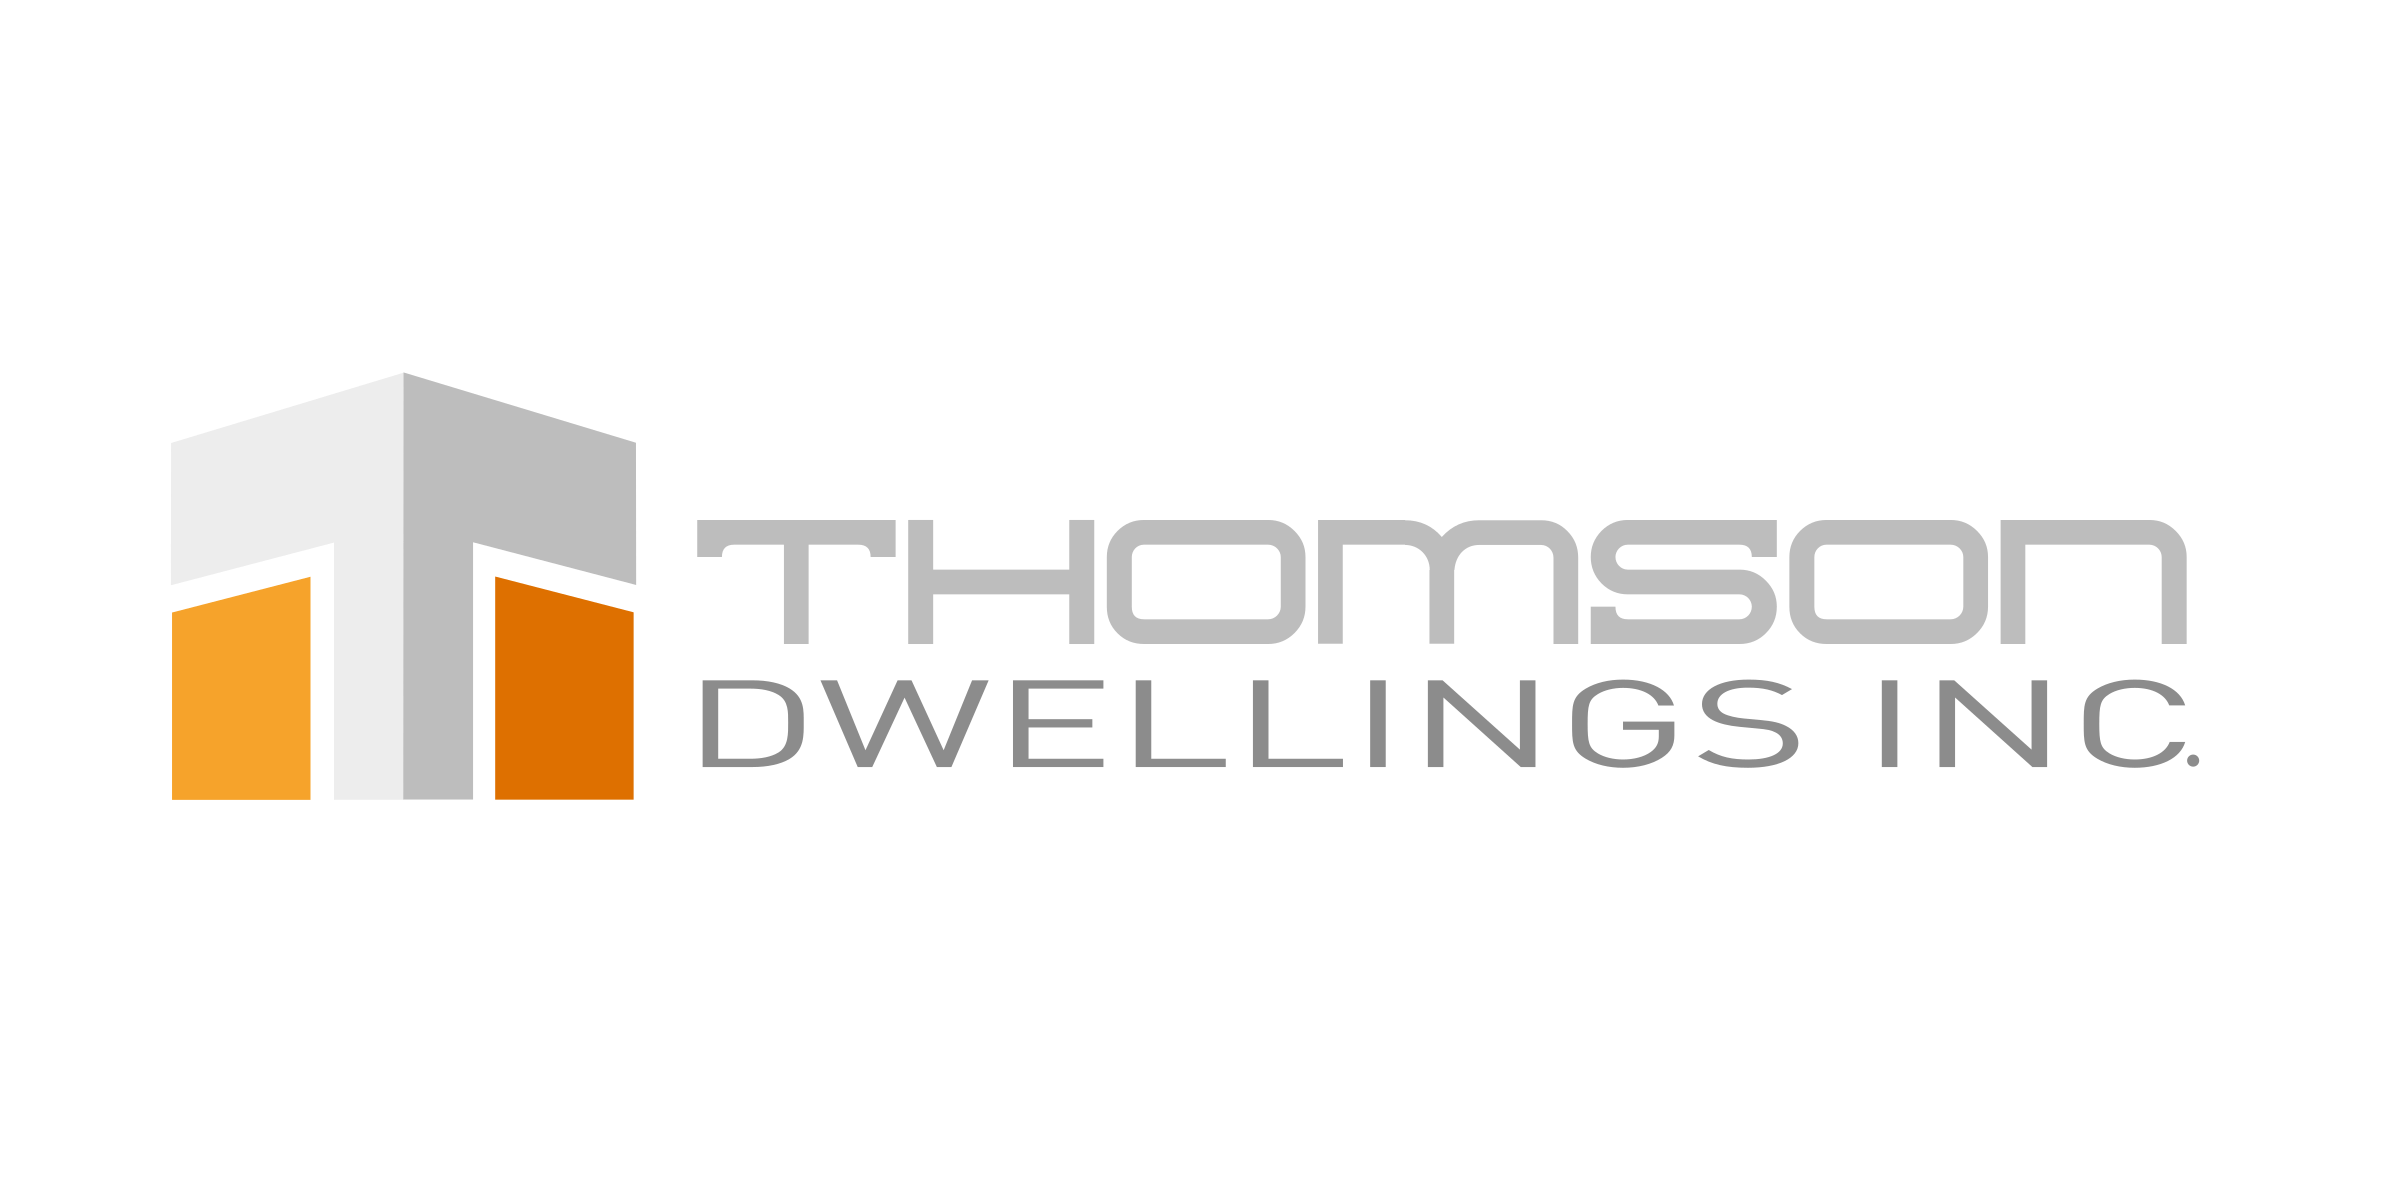 Read more on Thomson Dwellings